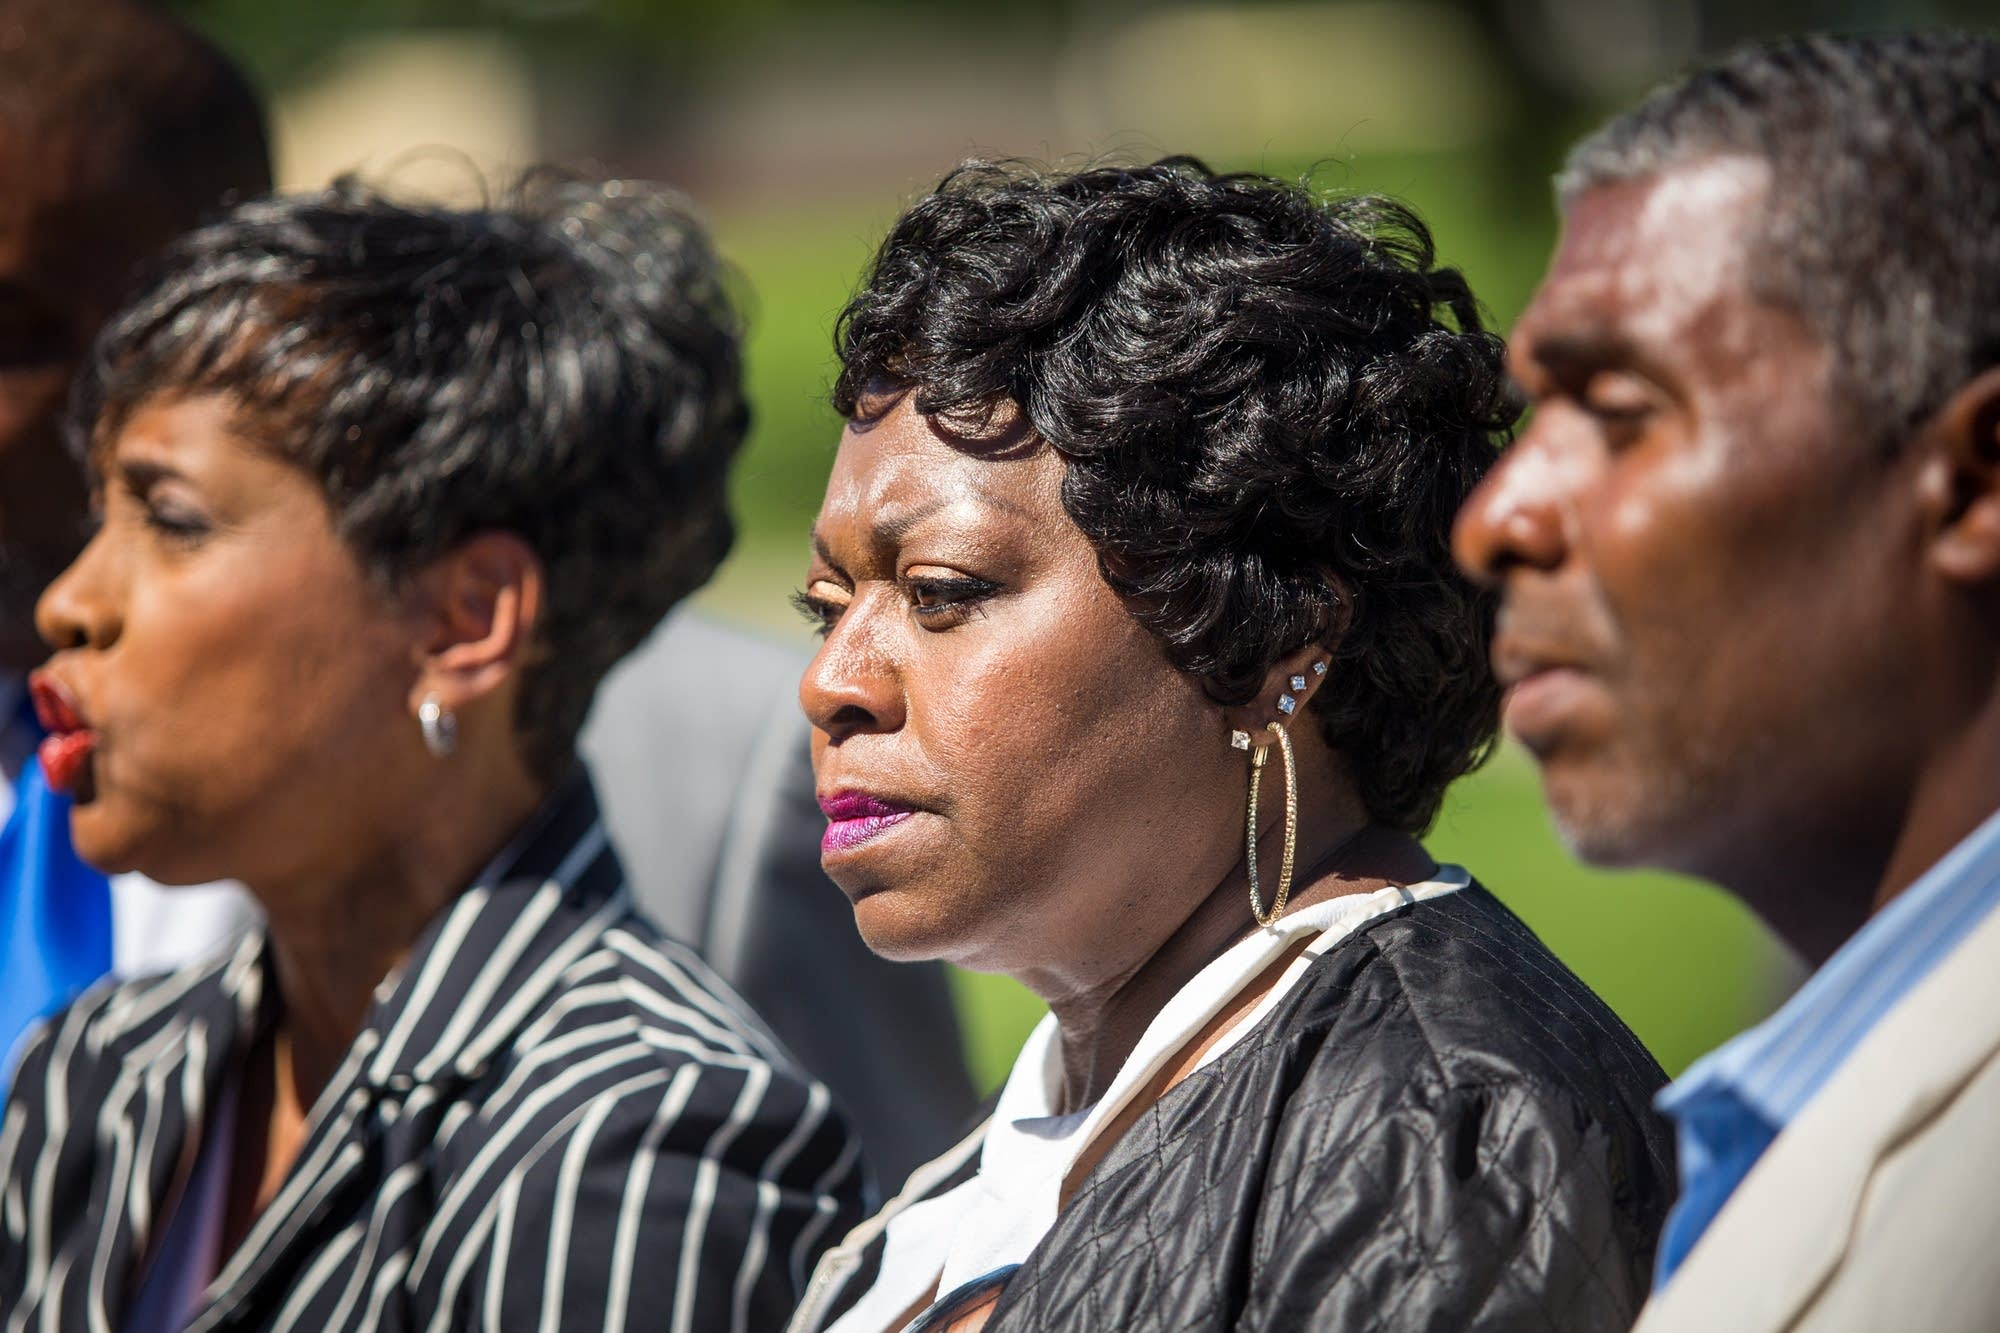 Valerie Castile at a press conference on Tuesday.